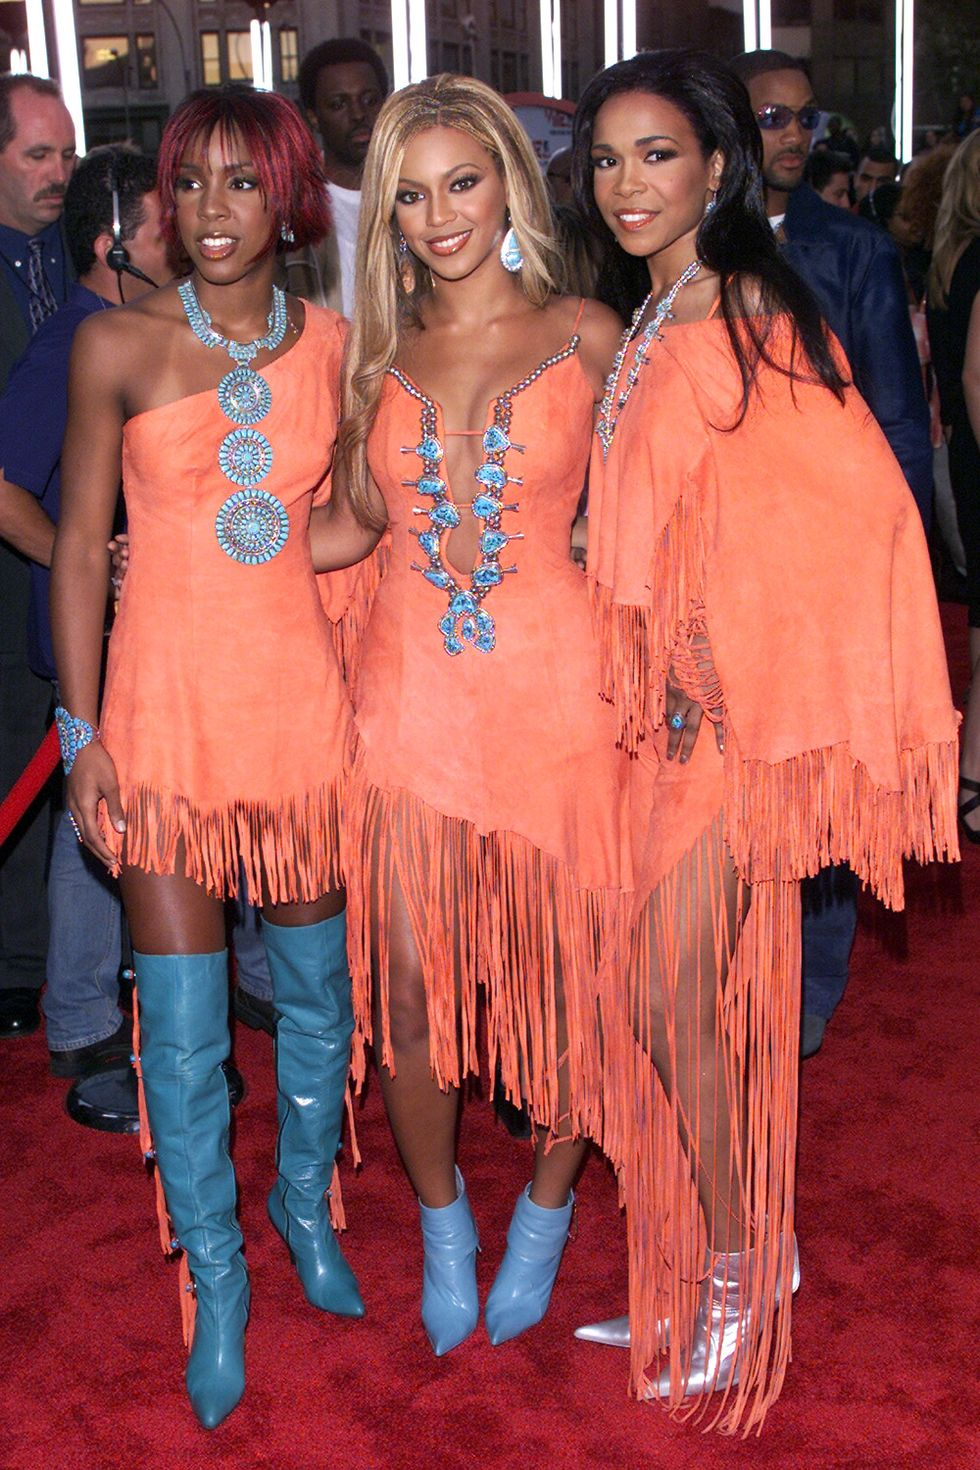 chic cowboy mtv vmas the-evolution-of-beyonce's-style:-from-the-bootylicious-singer-to-the-homecoming-queen